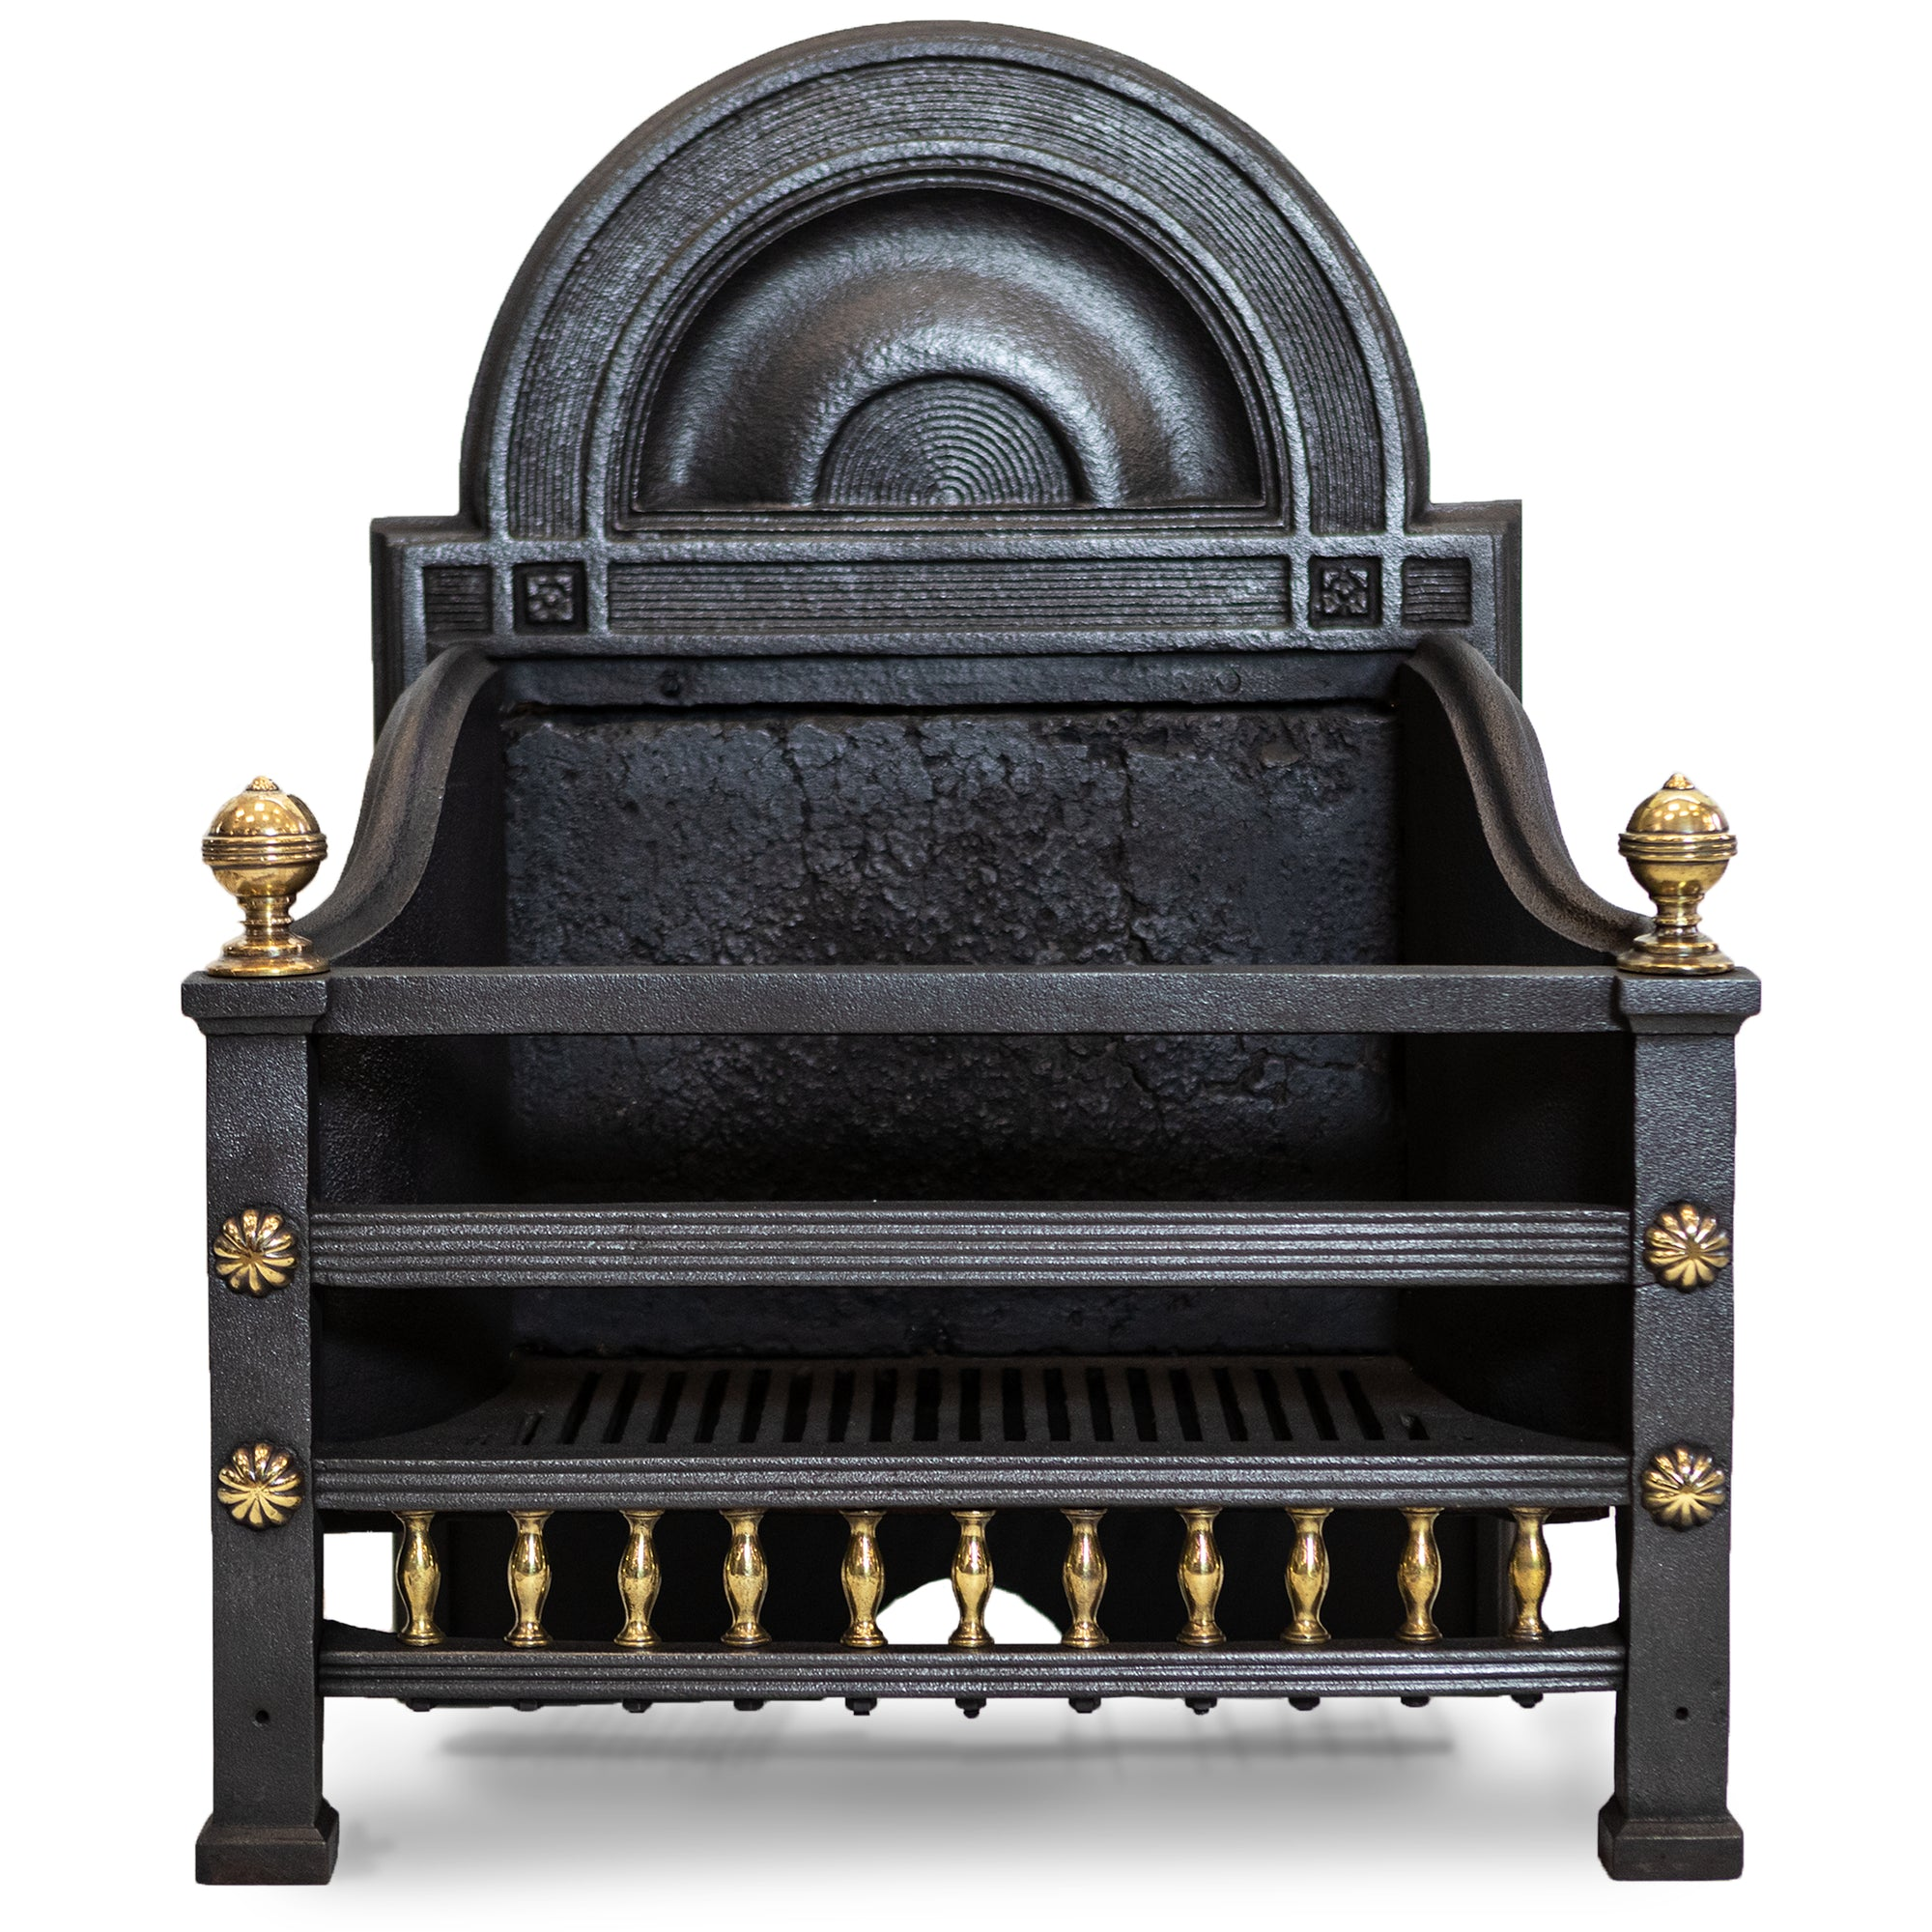 Antique Cast Iron Fireplace Basket With Brass Finials | The Architectural Forum